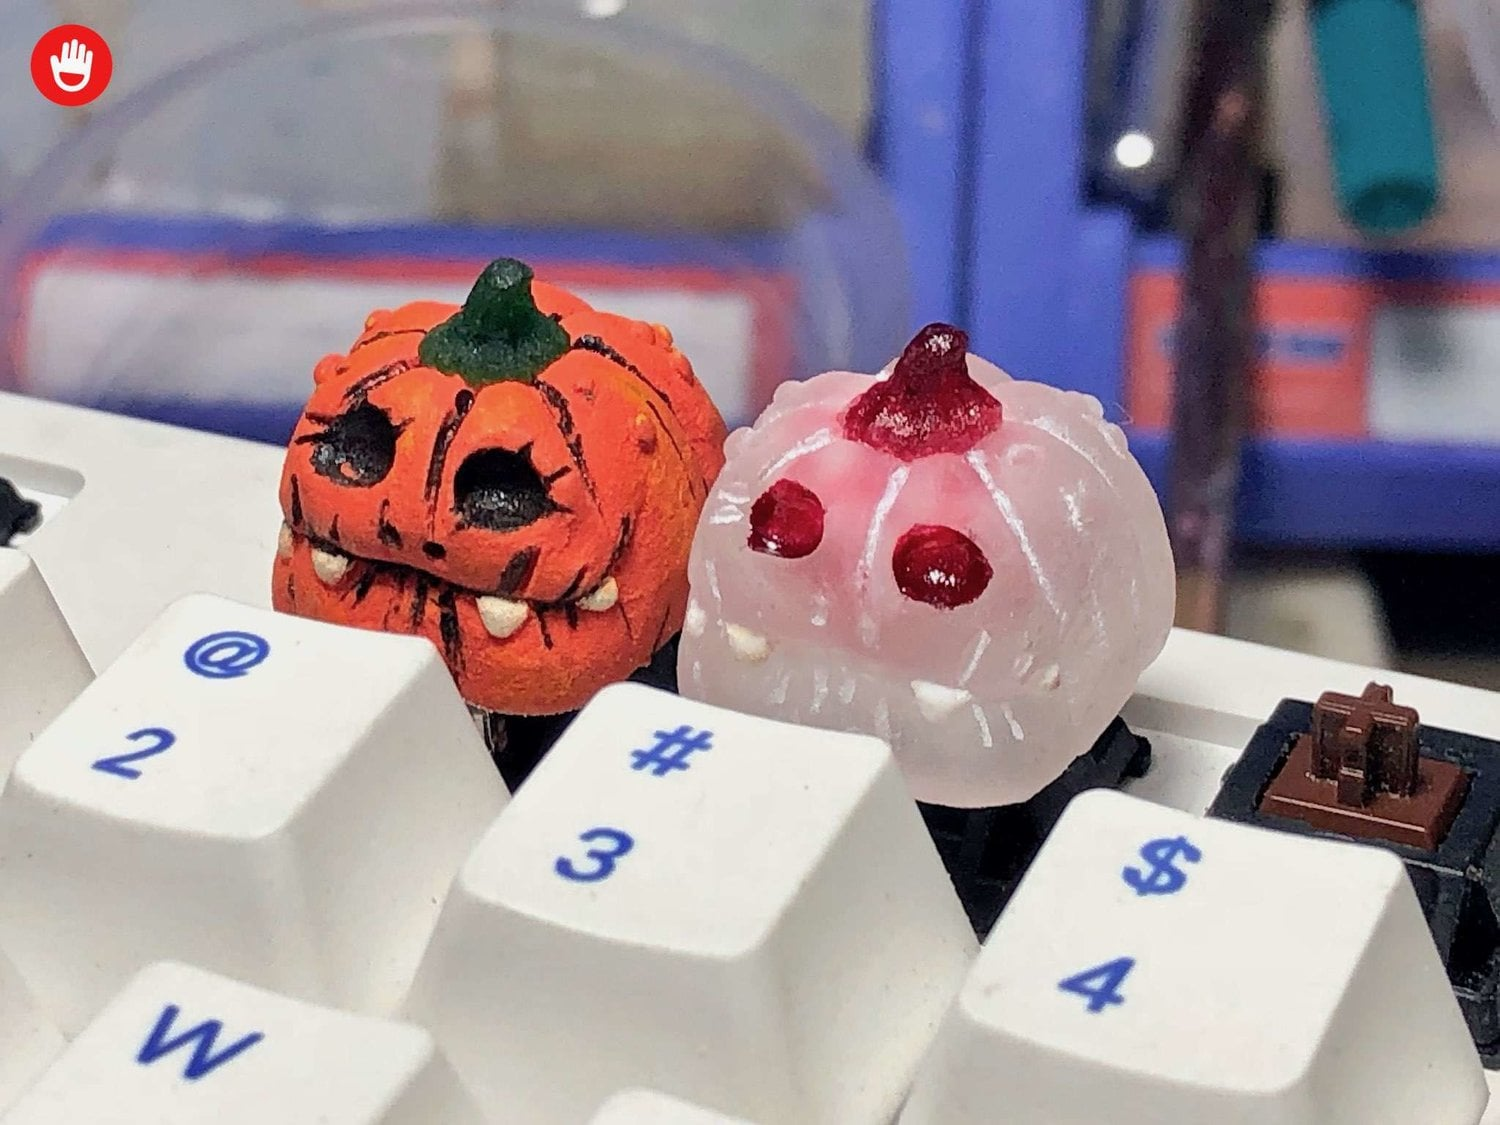 Land of the Dead give away – The Pumpkin Brain artisan